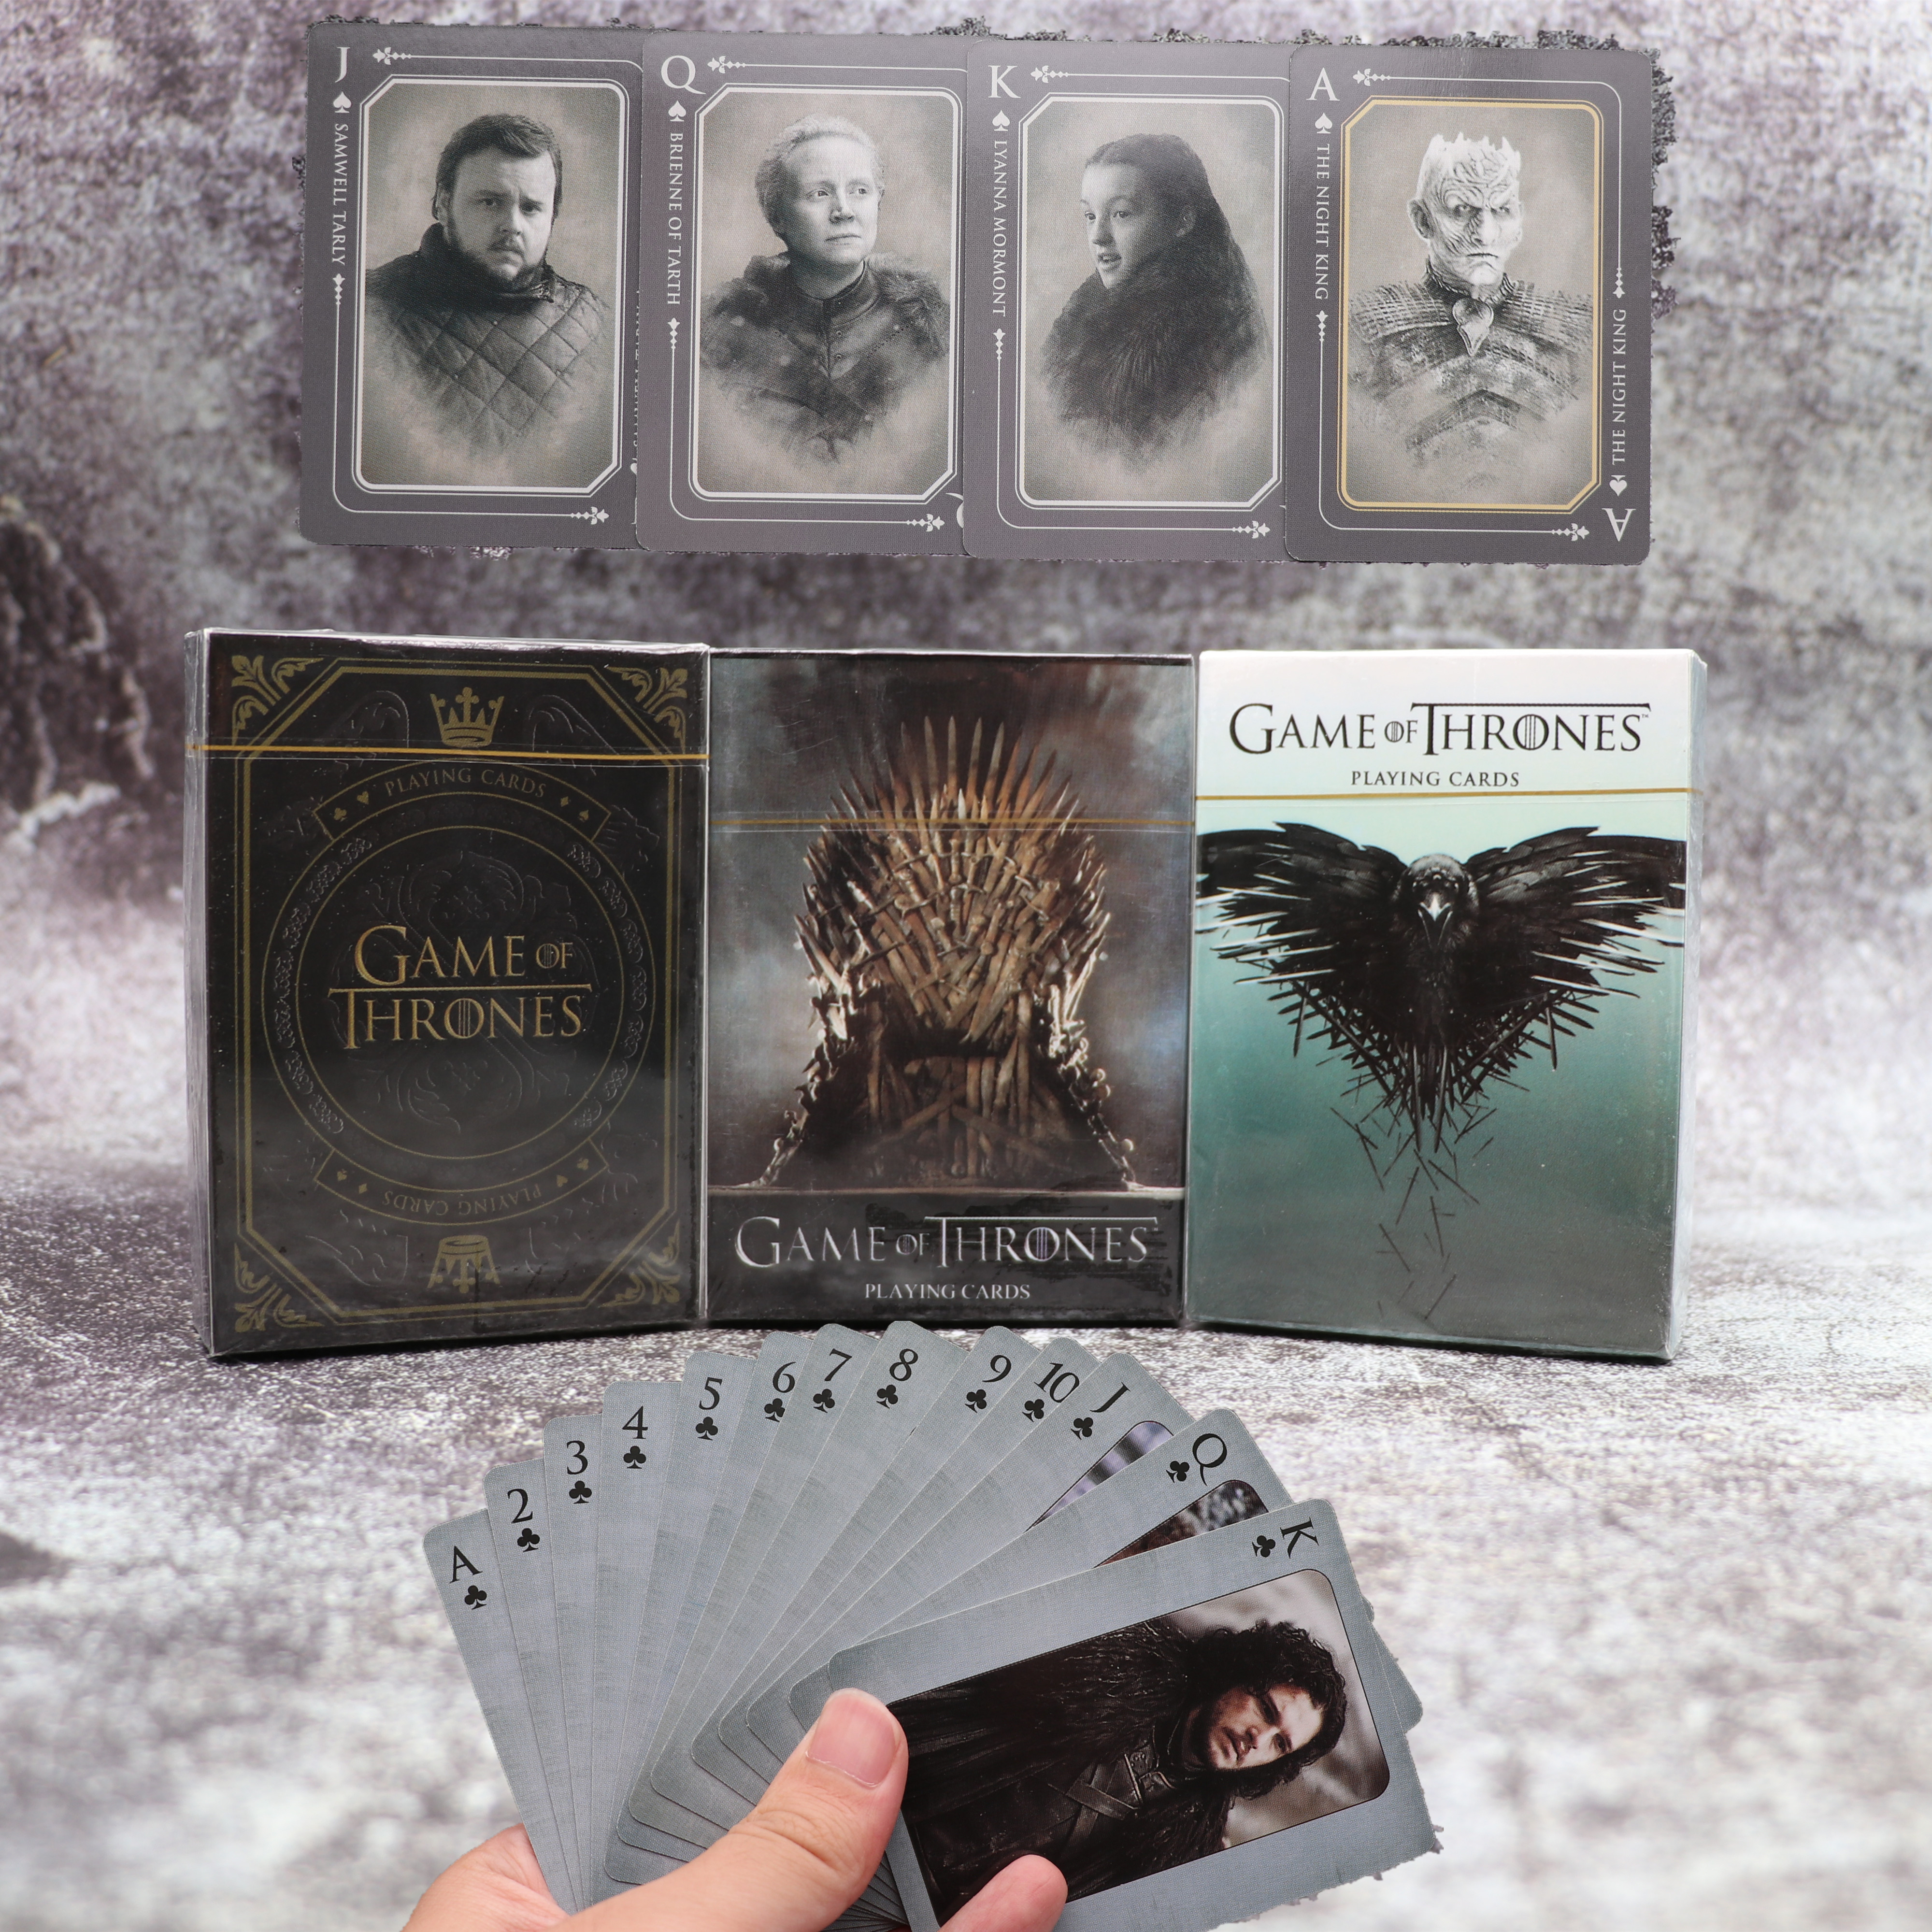 Movie Game of Thrones Cosplay Props Stark Jon Snow Daenerys Targaryen Dany Dragon Mother Playing Cards Board Game Collect Gift(China)